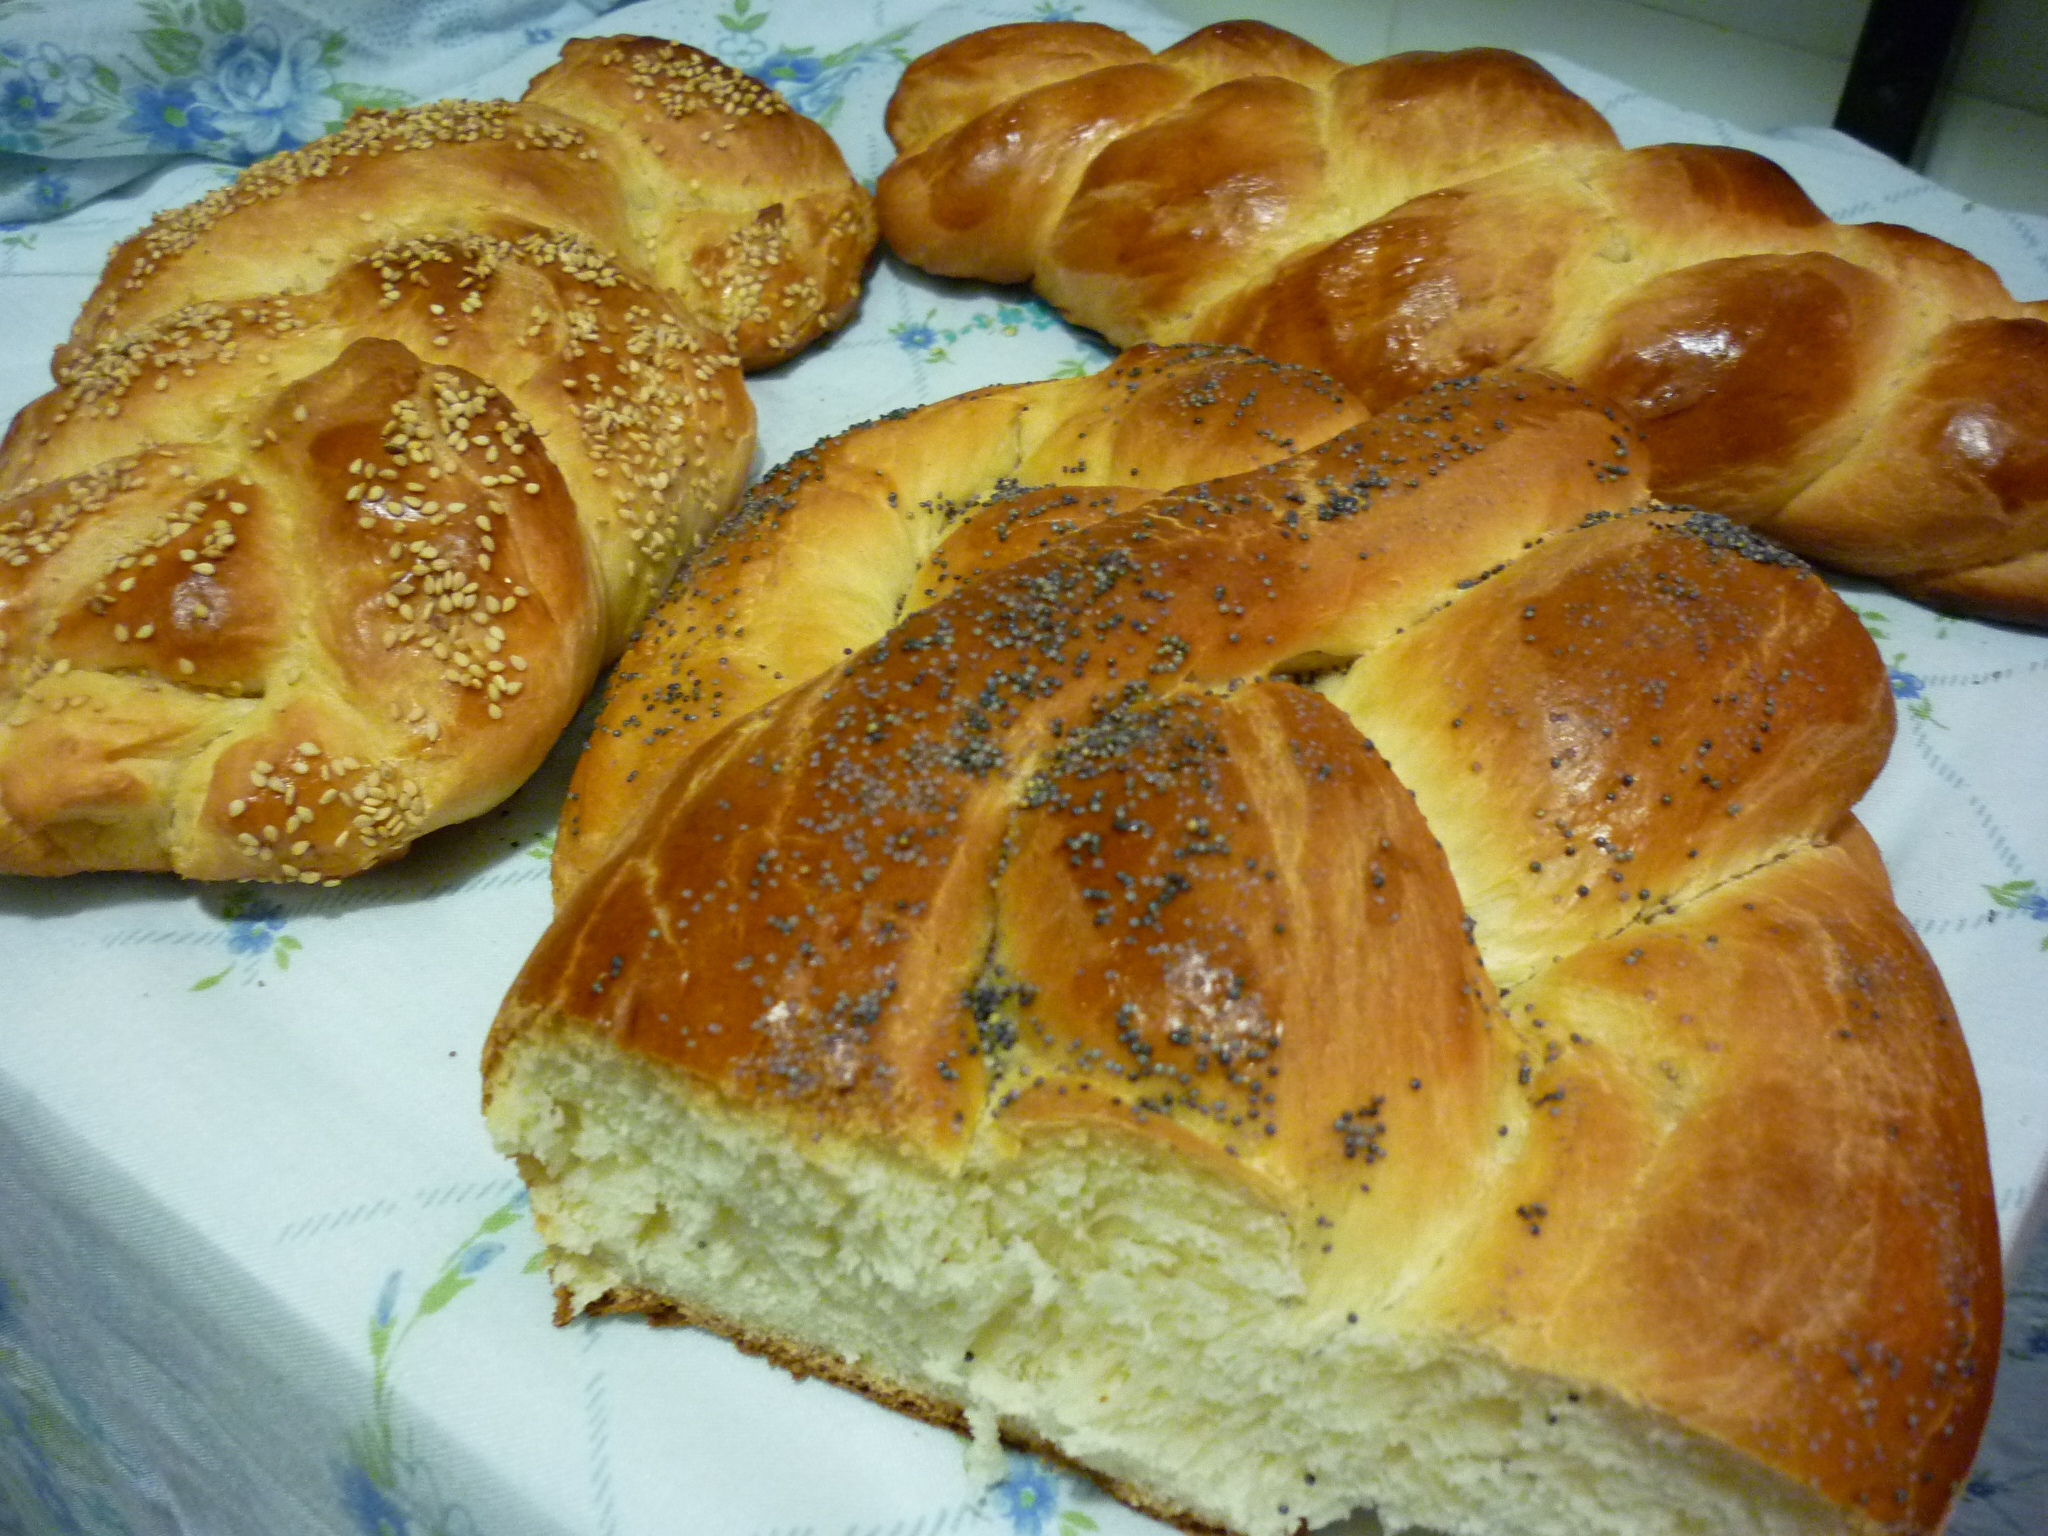 Challah Baking Extravaganza - Pick Up The Fork